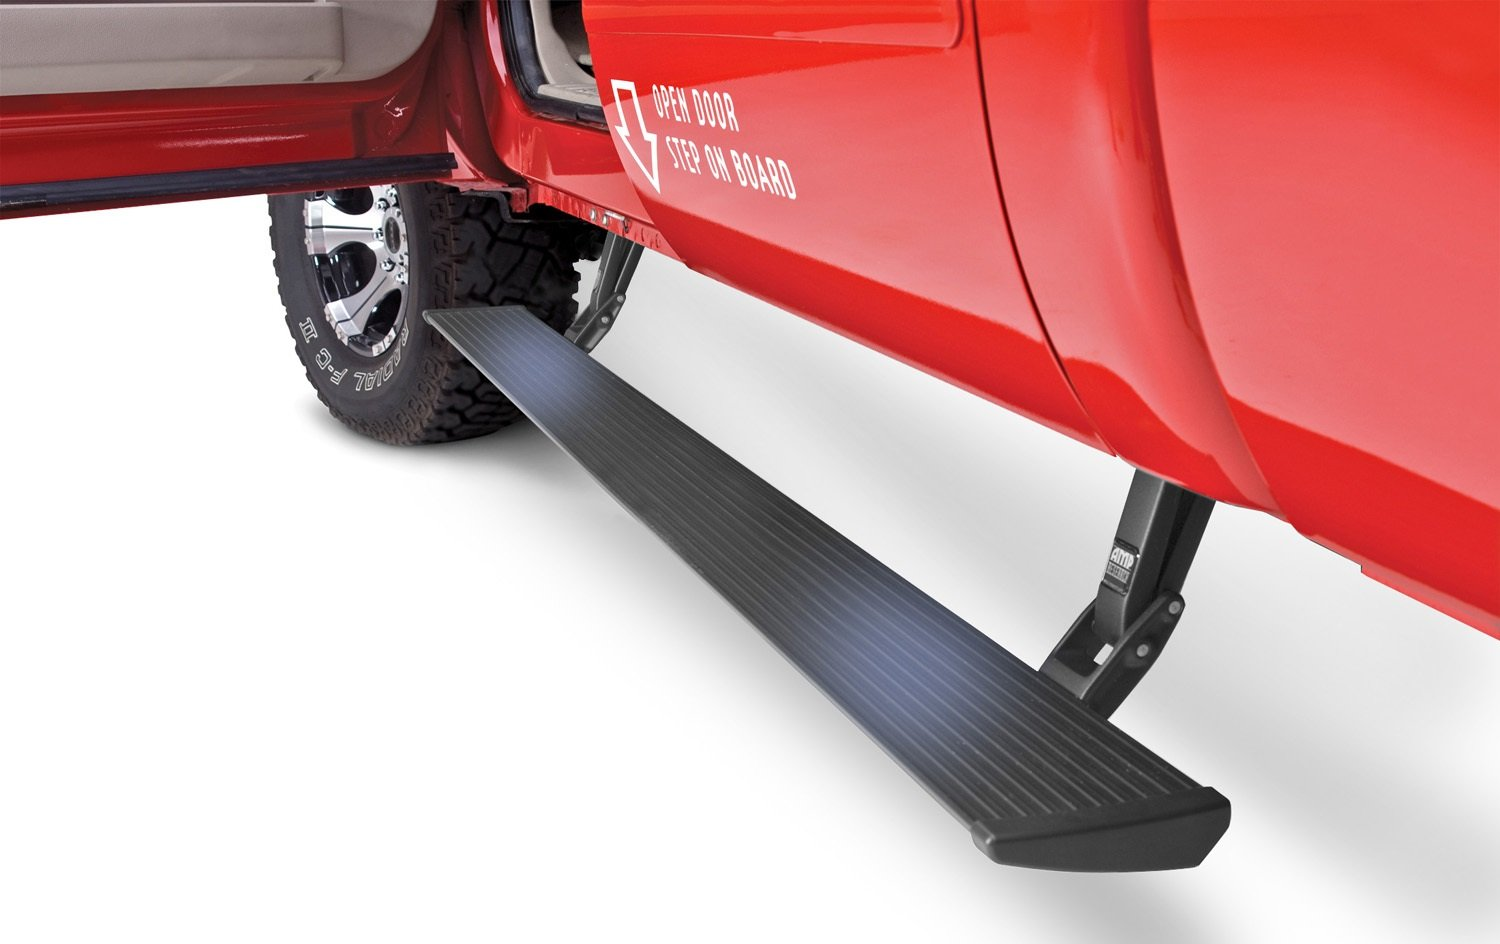 AMP Research 76134-01A PowerStep Electric Running Boards Plug N' Play System for 2008-2016 Ford F-250/F-350/F-450 (All Cabs)